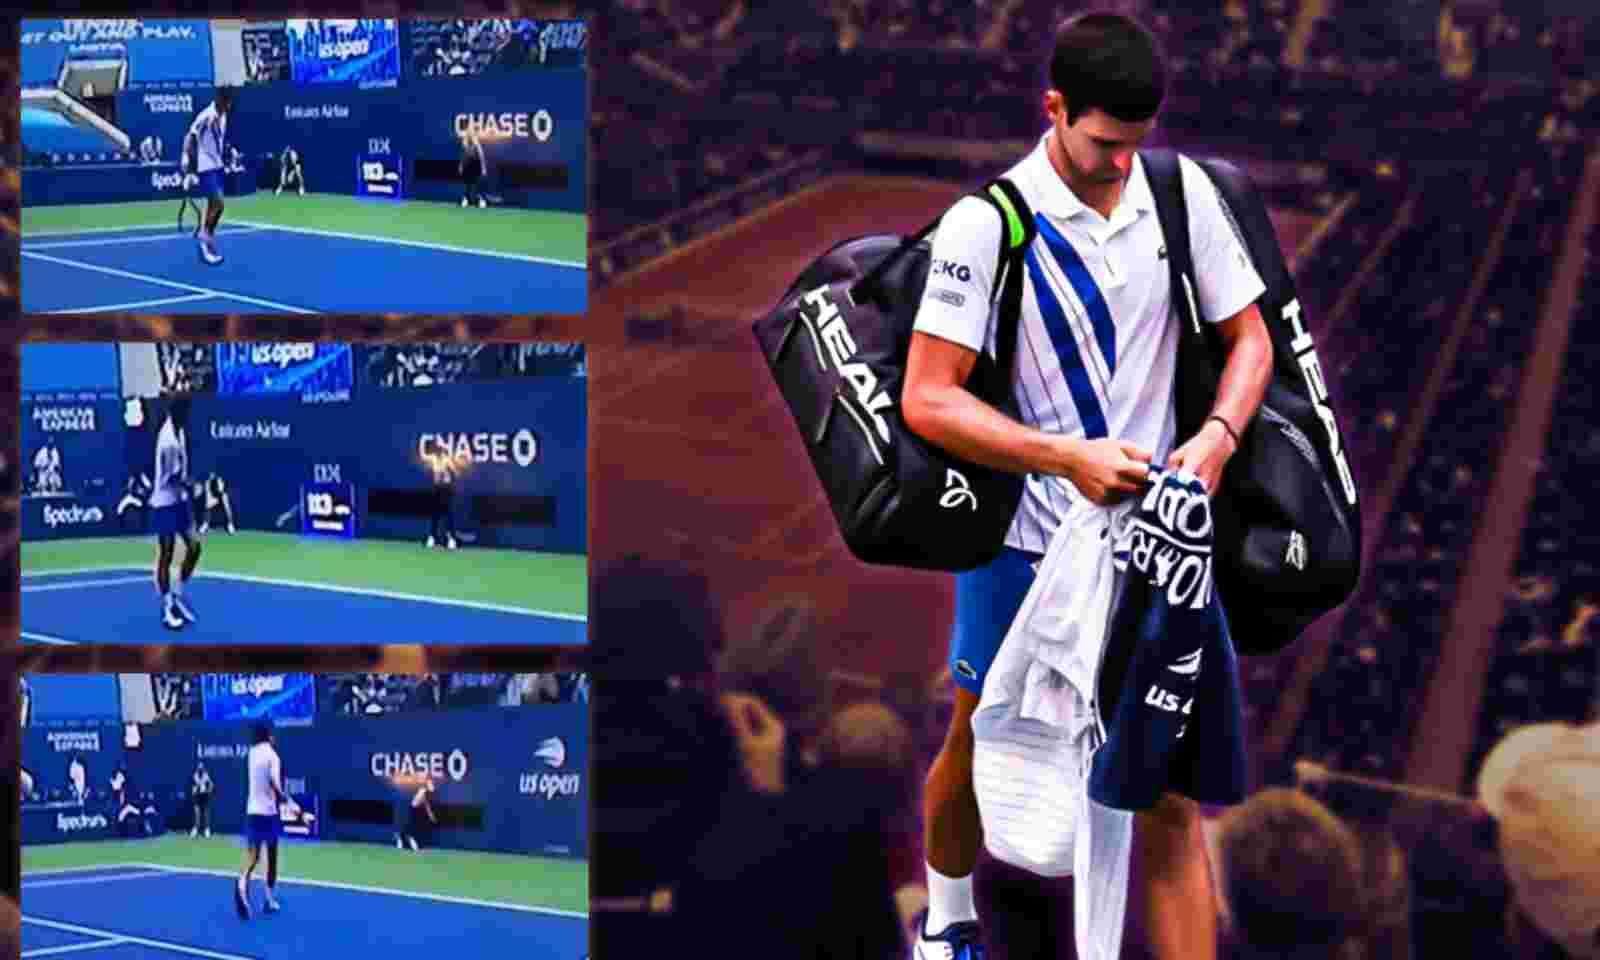 Us Open 2020 World No 1 Novak Djokovic Disqualified After Hitting Line Judge With Ball